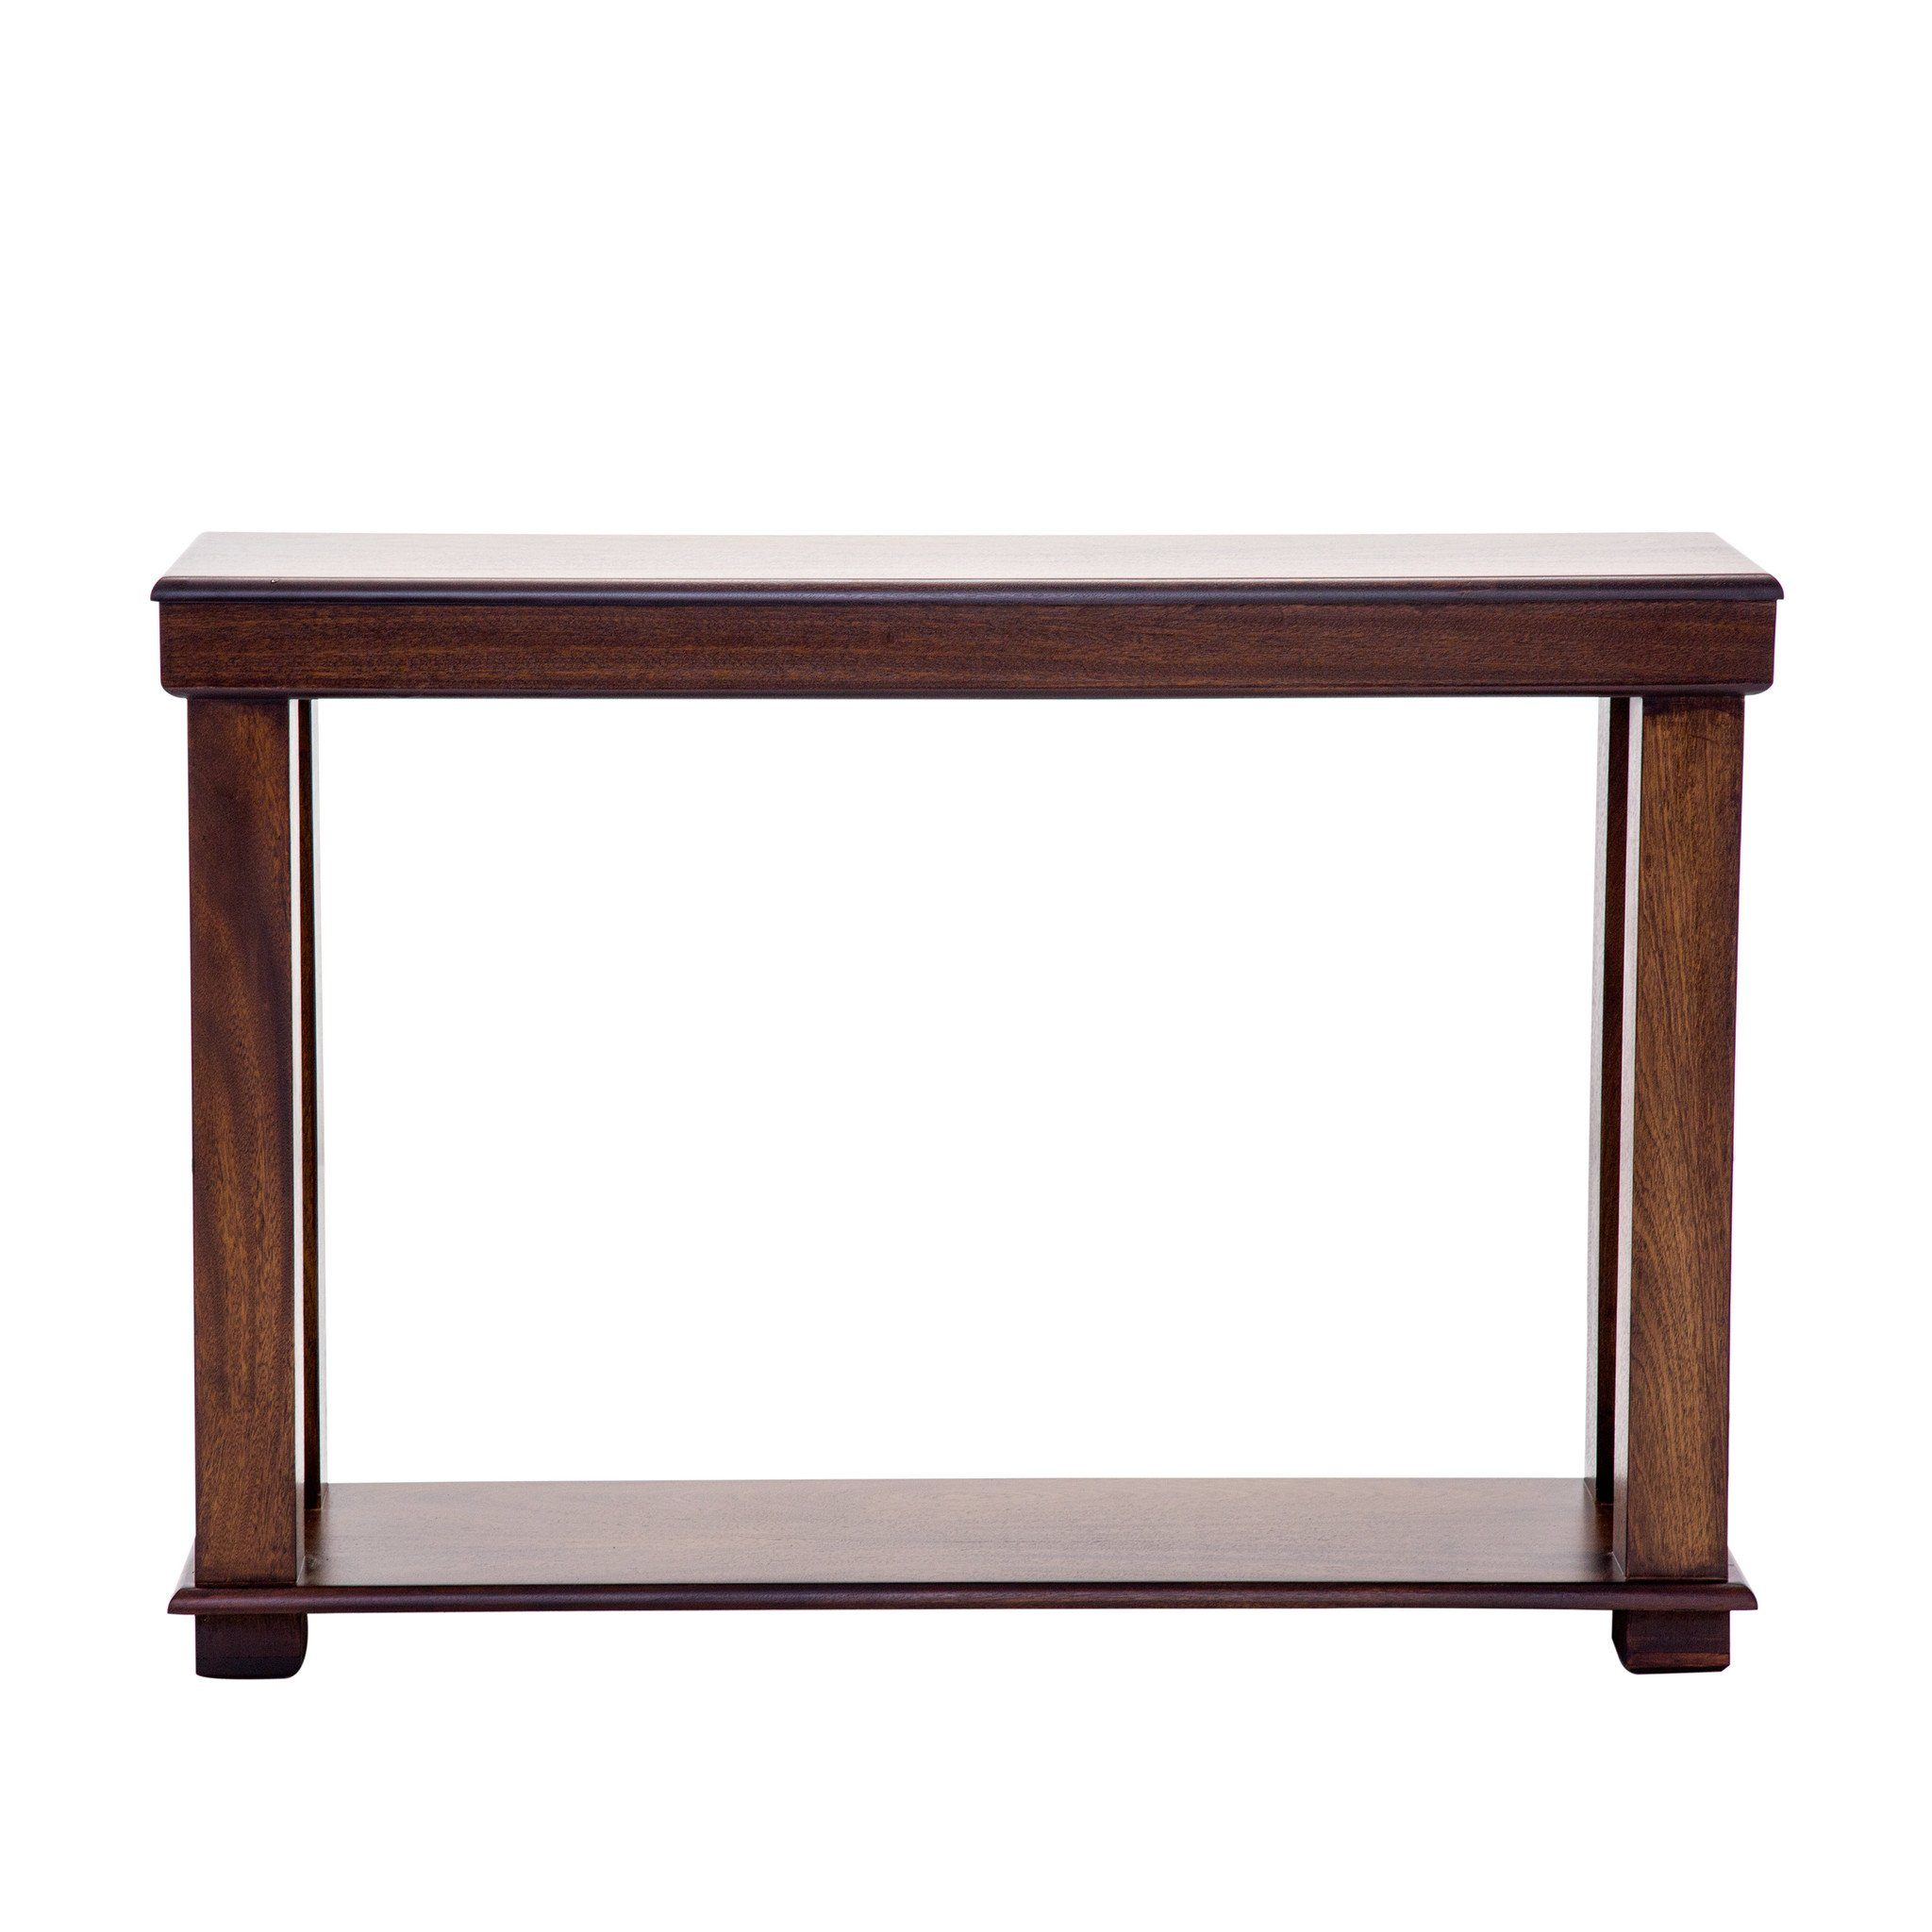 Urban Walnut Hall Table - Shelf